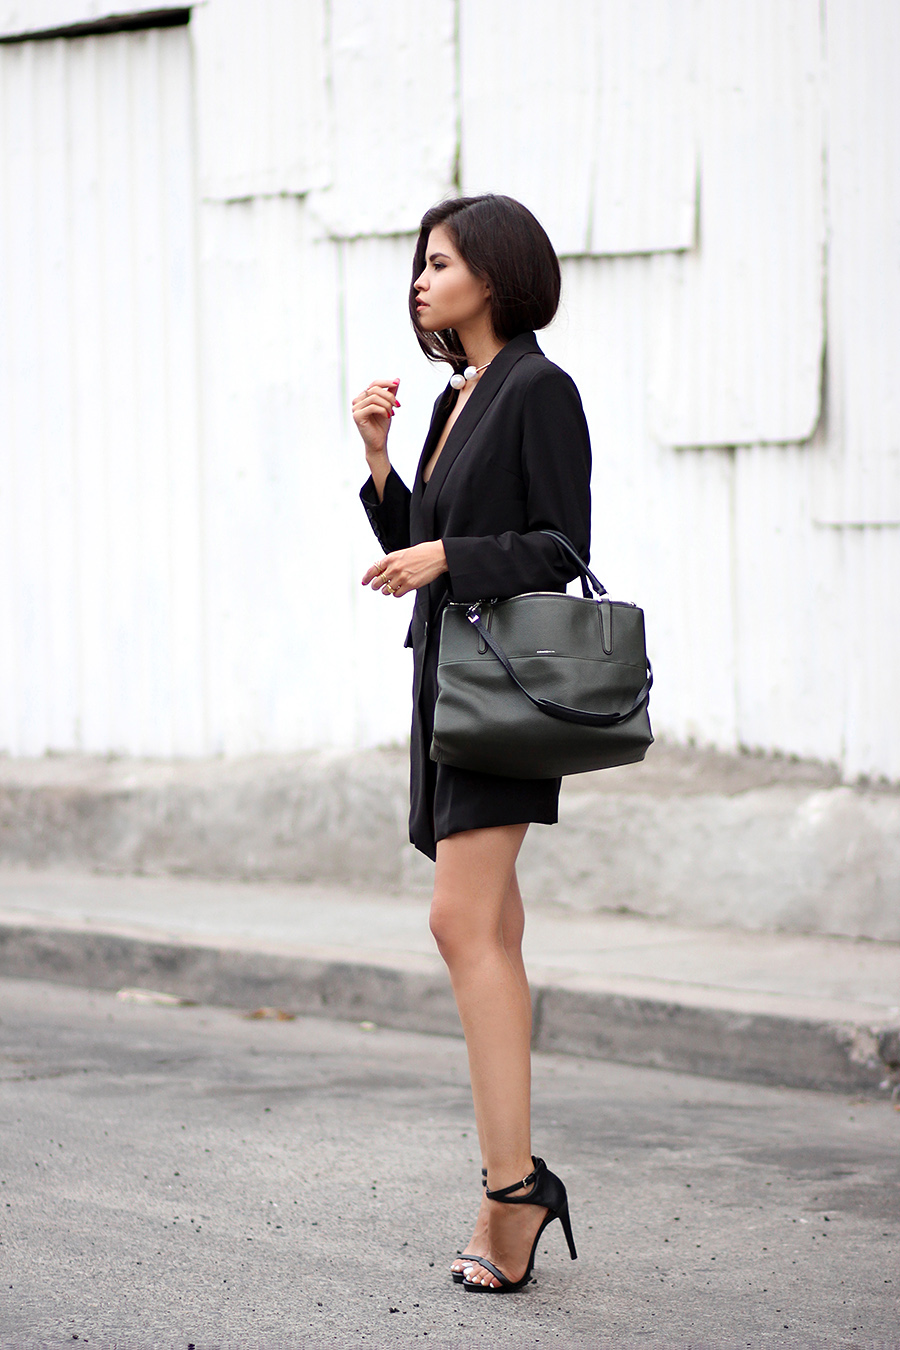 Adriana Gastélum is wearing a black blazer dress from Sheinside, bag from Coach and ankle strap sandals from Zara